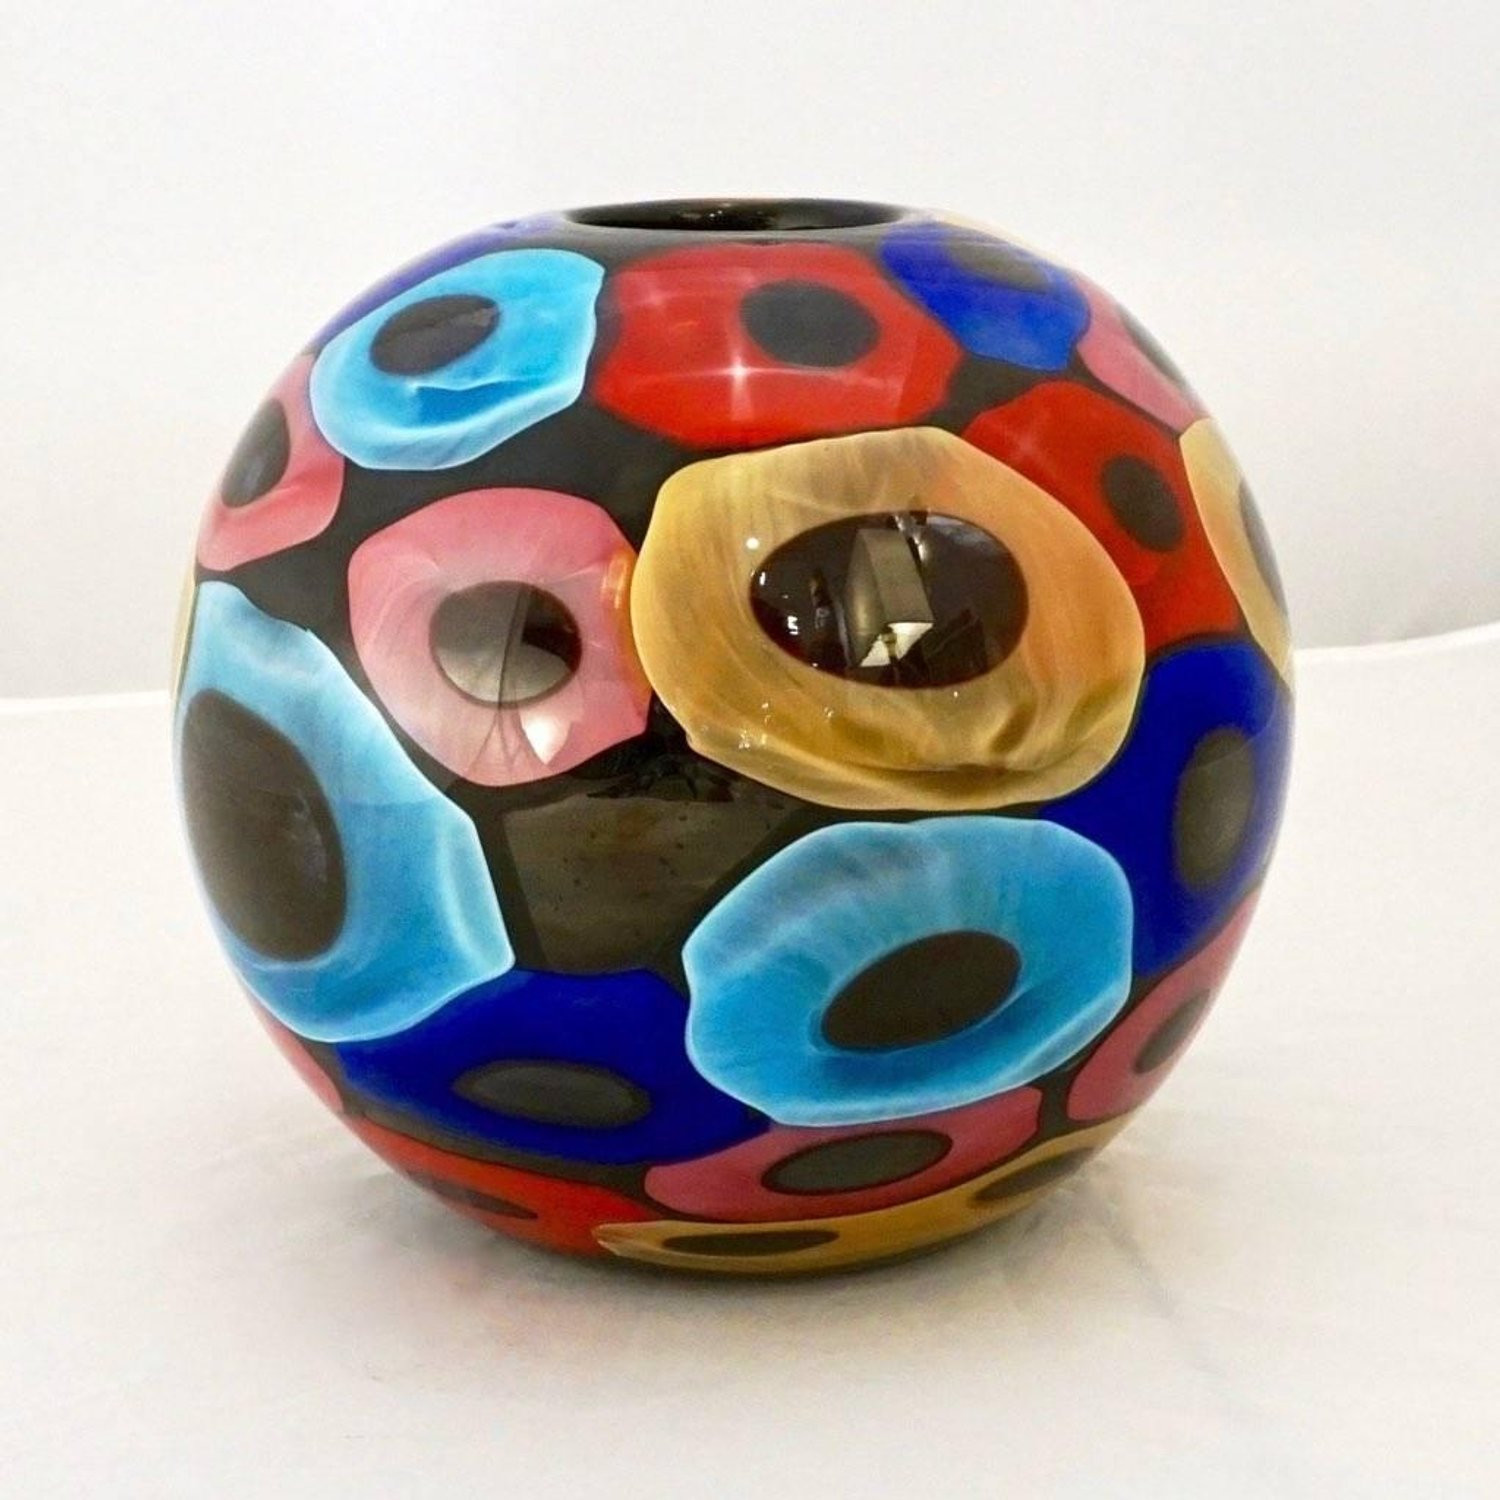 red hand blown glass vase of camozzo 1990 modern black azure blue red pink yellow murano glass with regard to camozzo 1990 modern black azure blue red pink yellow murano glass vases for sale at 1stdibs